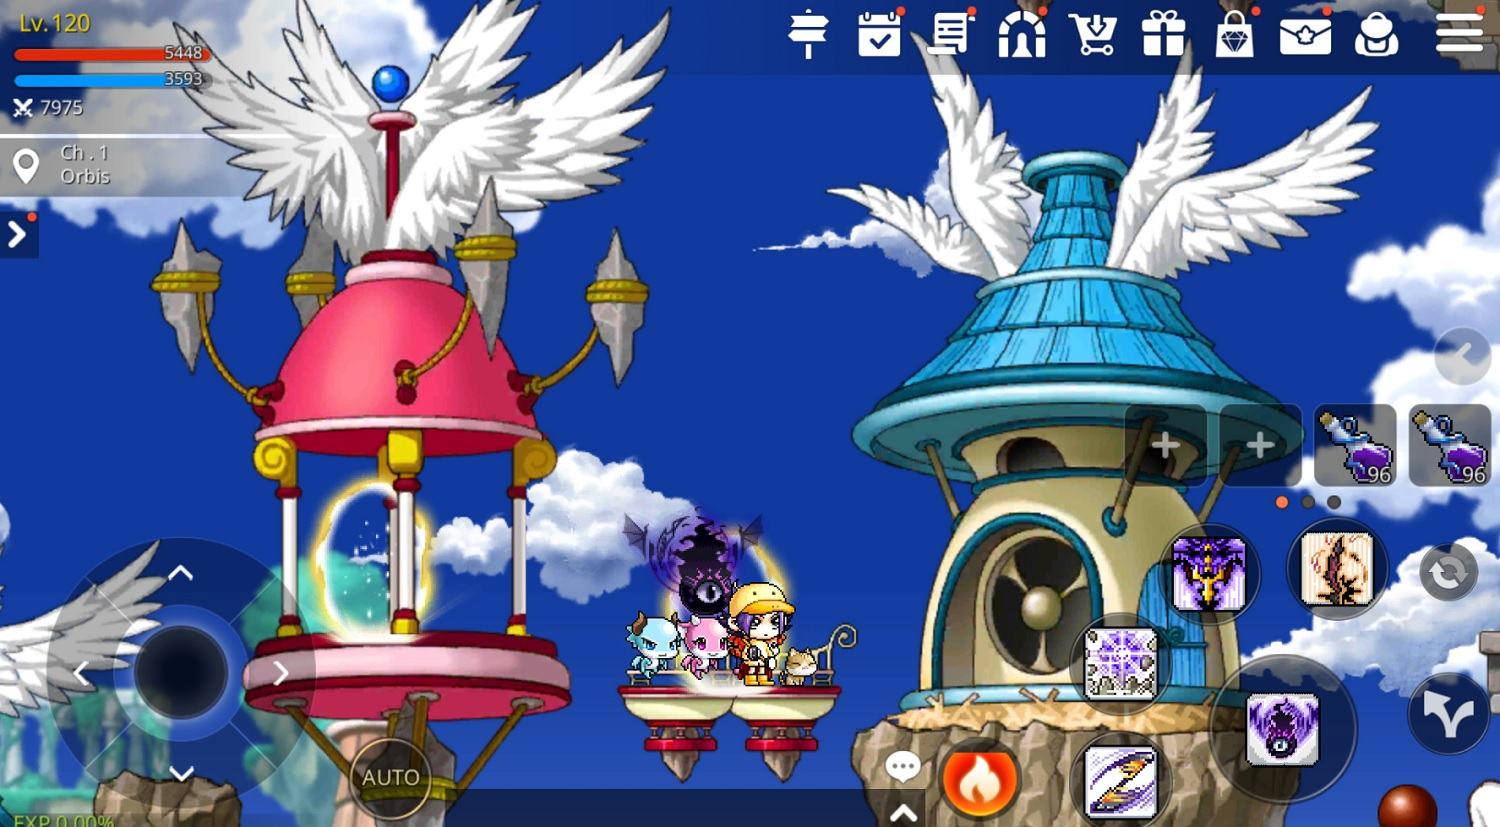 ice fishing chair maplestory chairs for bedrooms cheap m reaches 3 million downloads in a week smart tech orbis